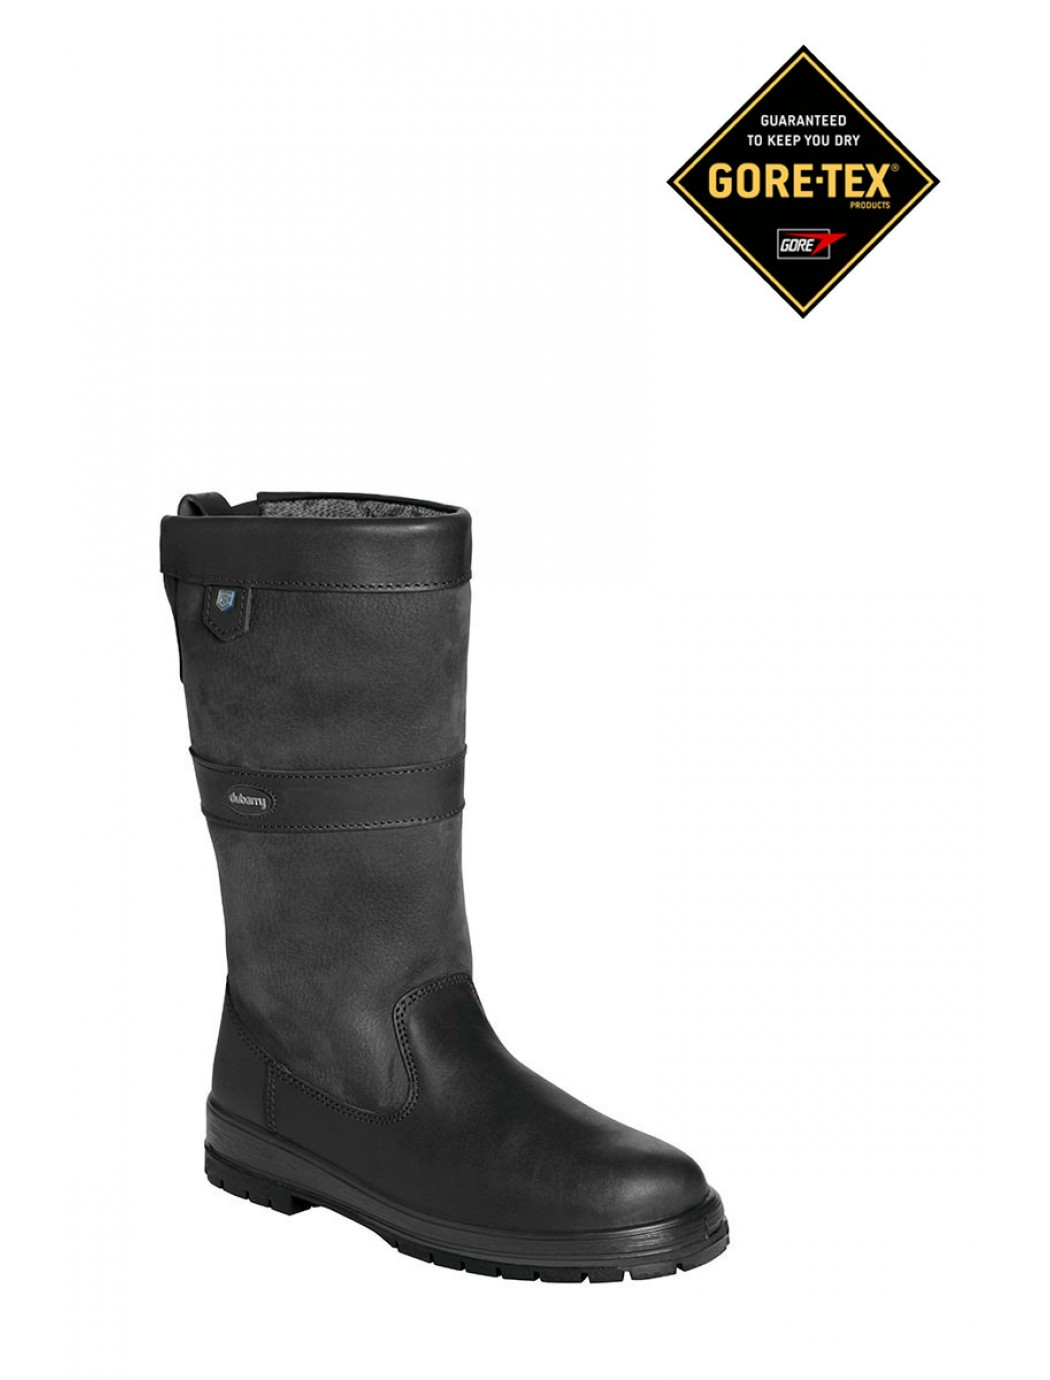 kildare-country-boots-black 1